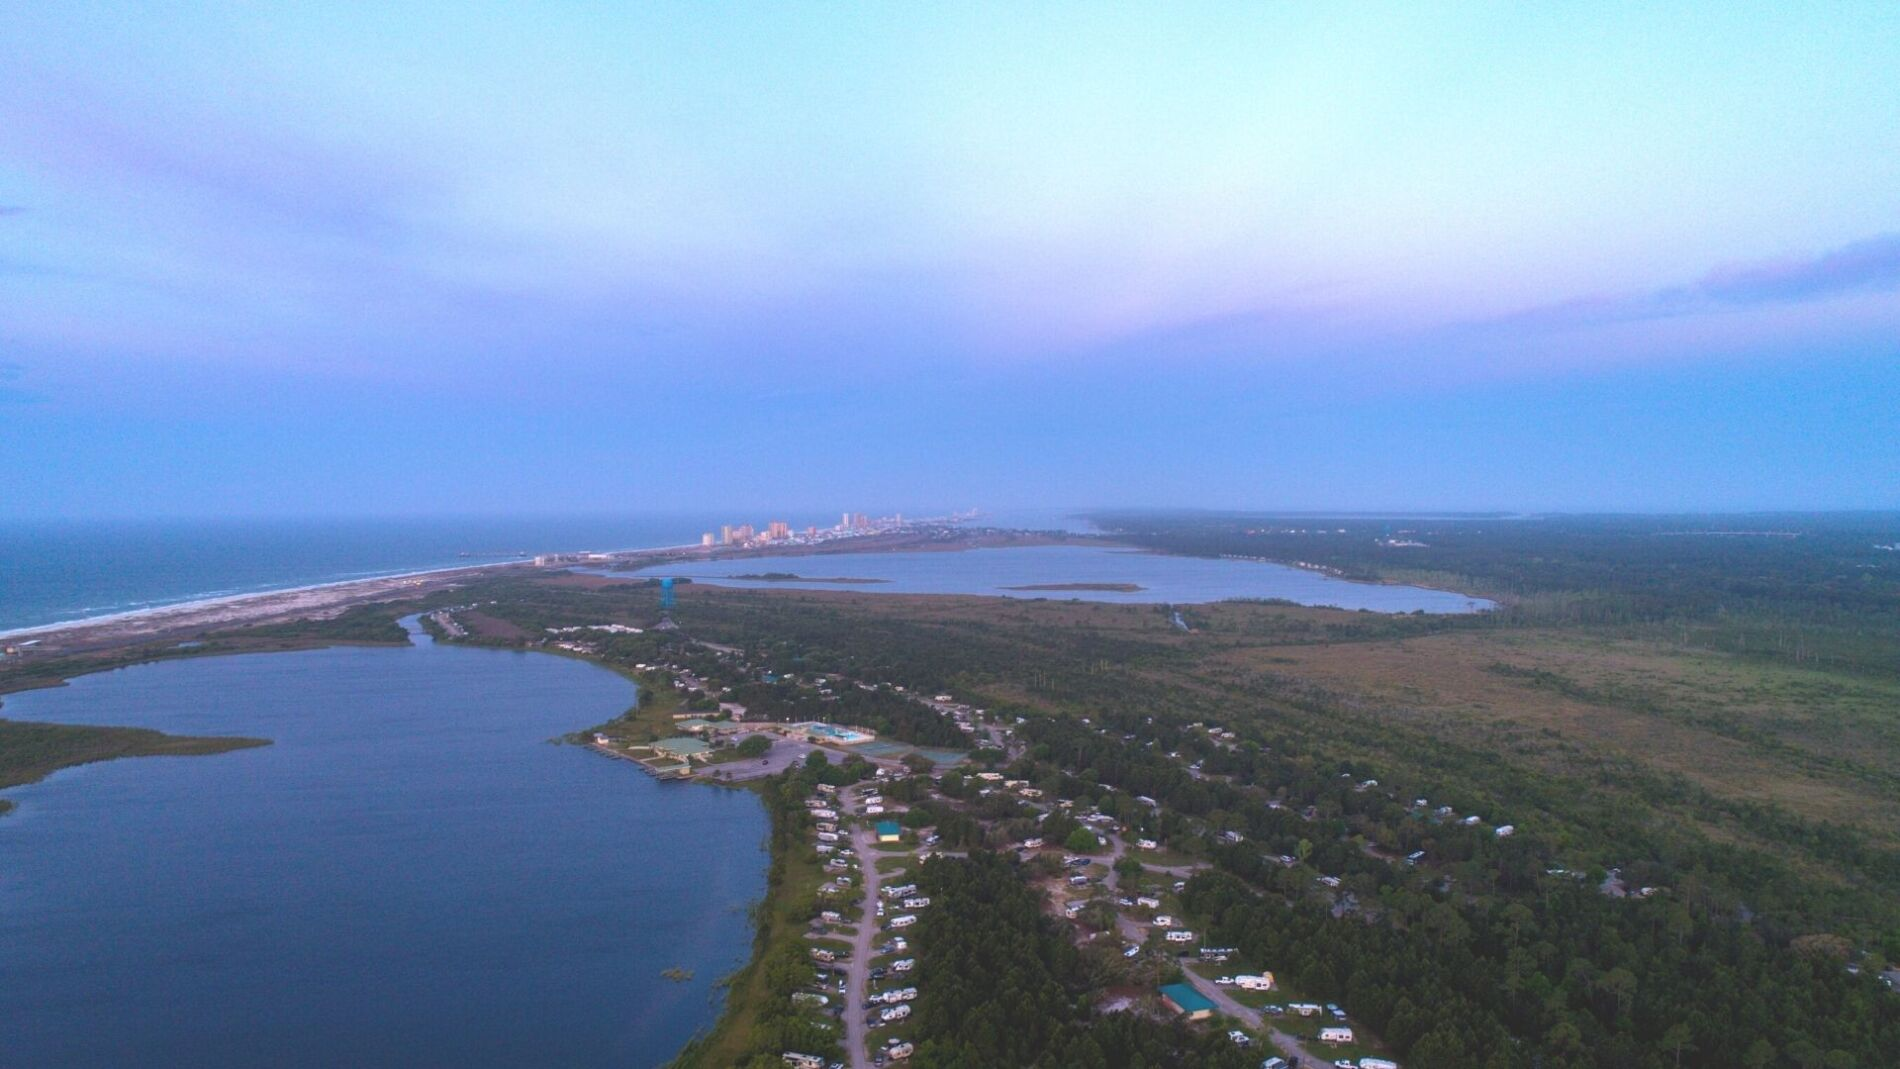 A beautiful shot of Gulf Shores from the air near our gulf shores gulf front rentals